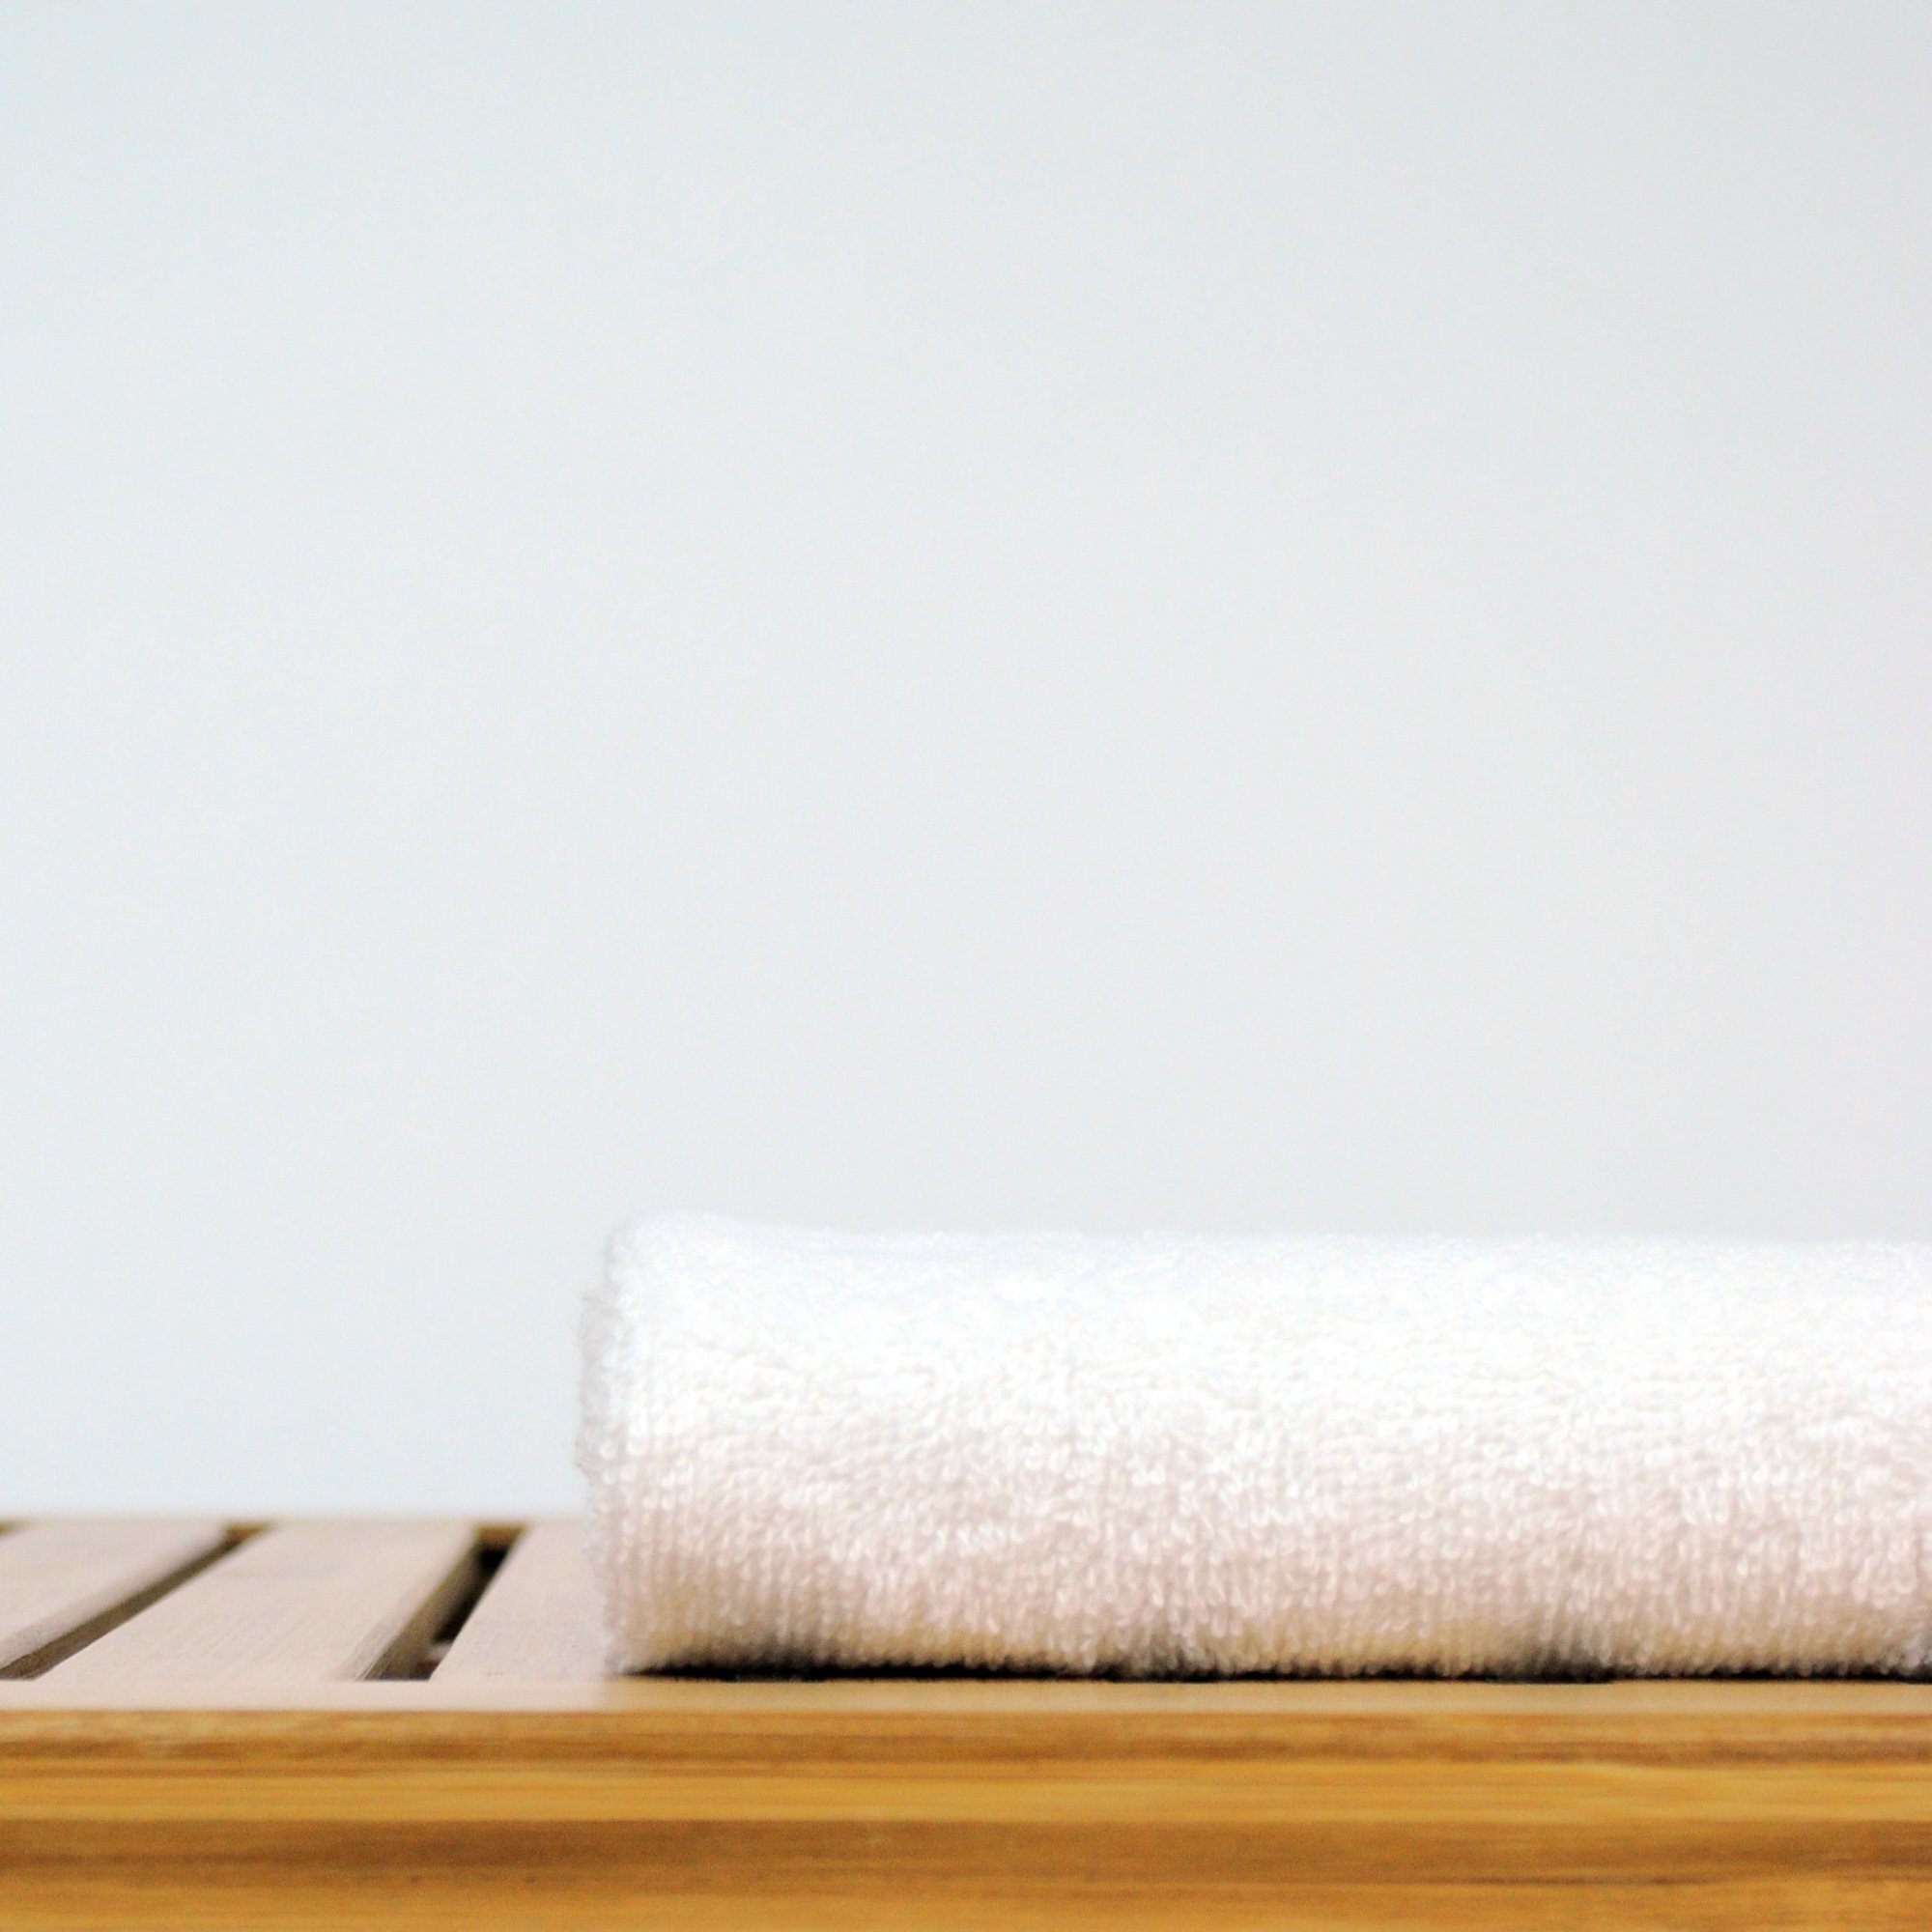 Bare Cotton Luxury Hotel & Spa Towel Turkish Cotton Wash Cloths,White, Piano, Set of 12 by BC BARE COTTON (Image #4)